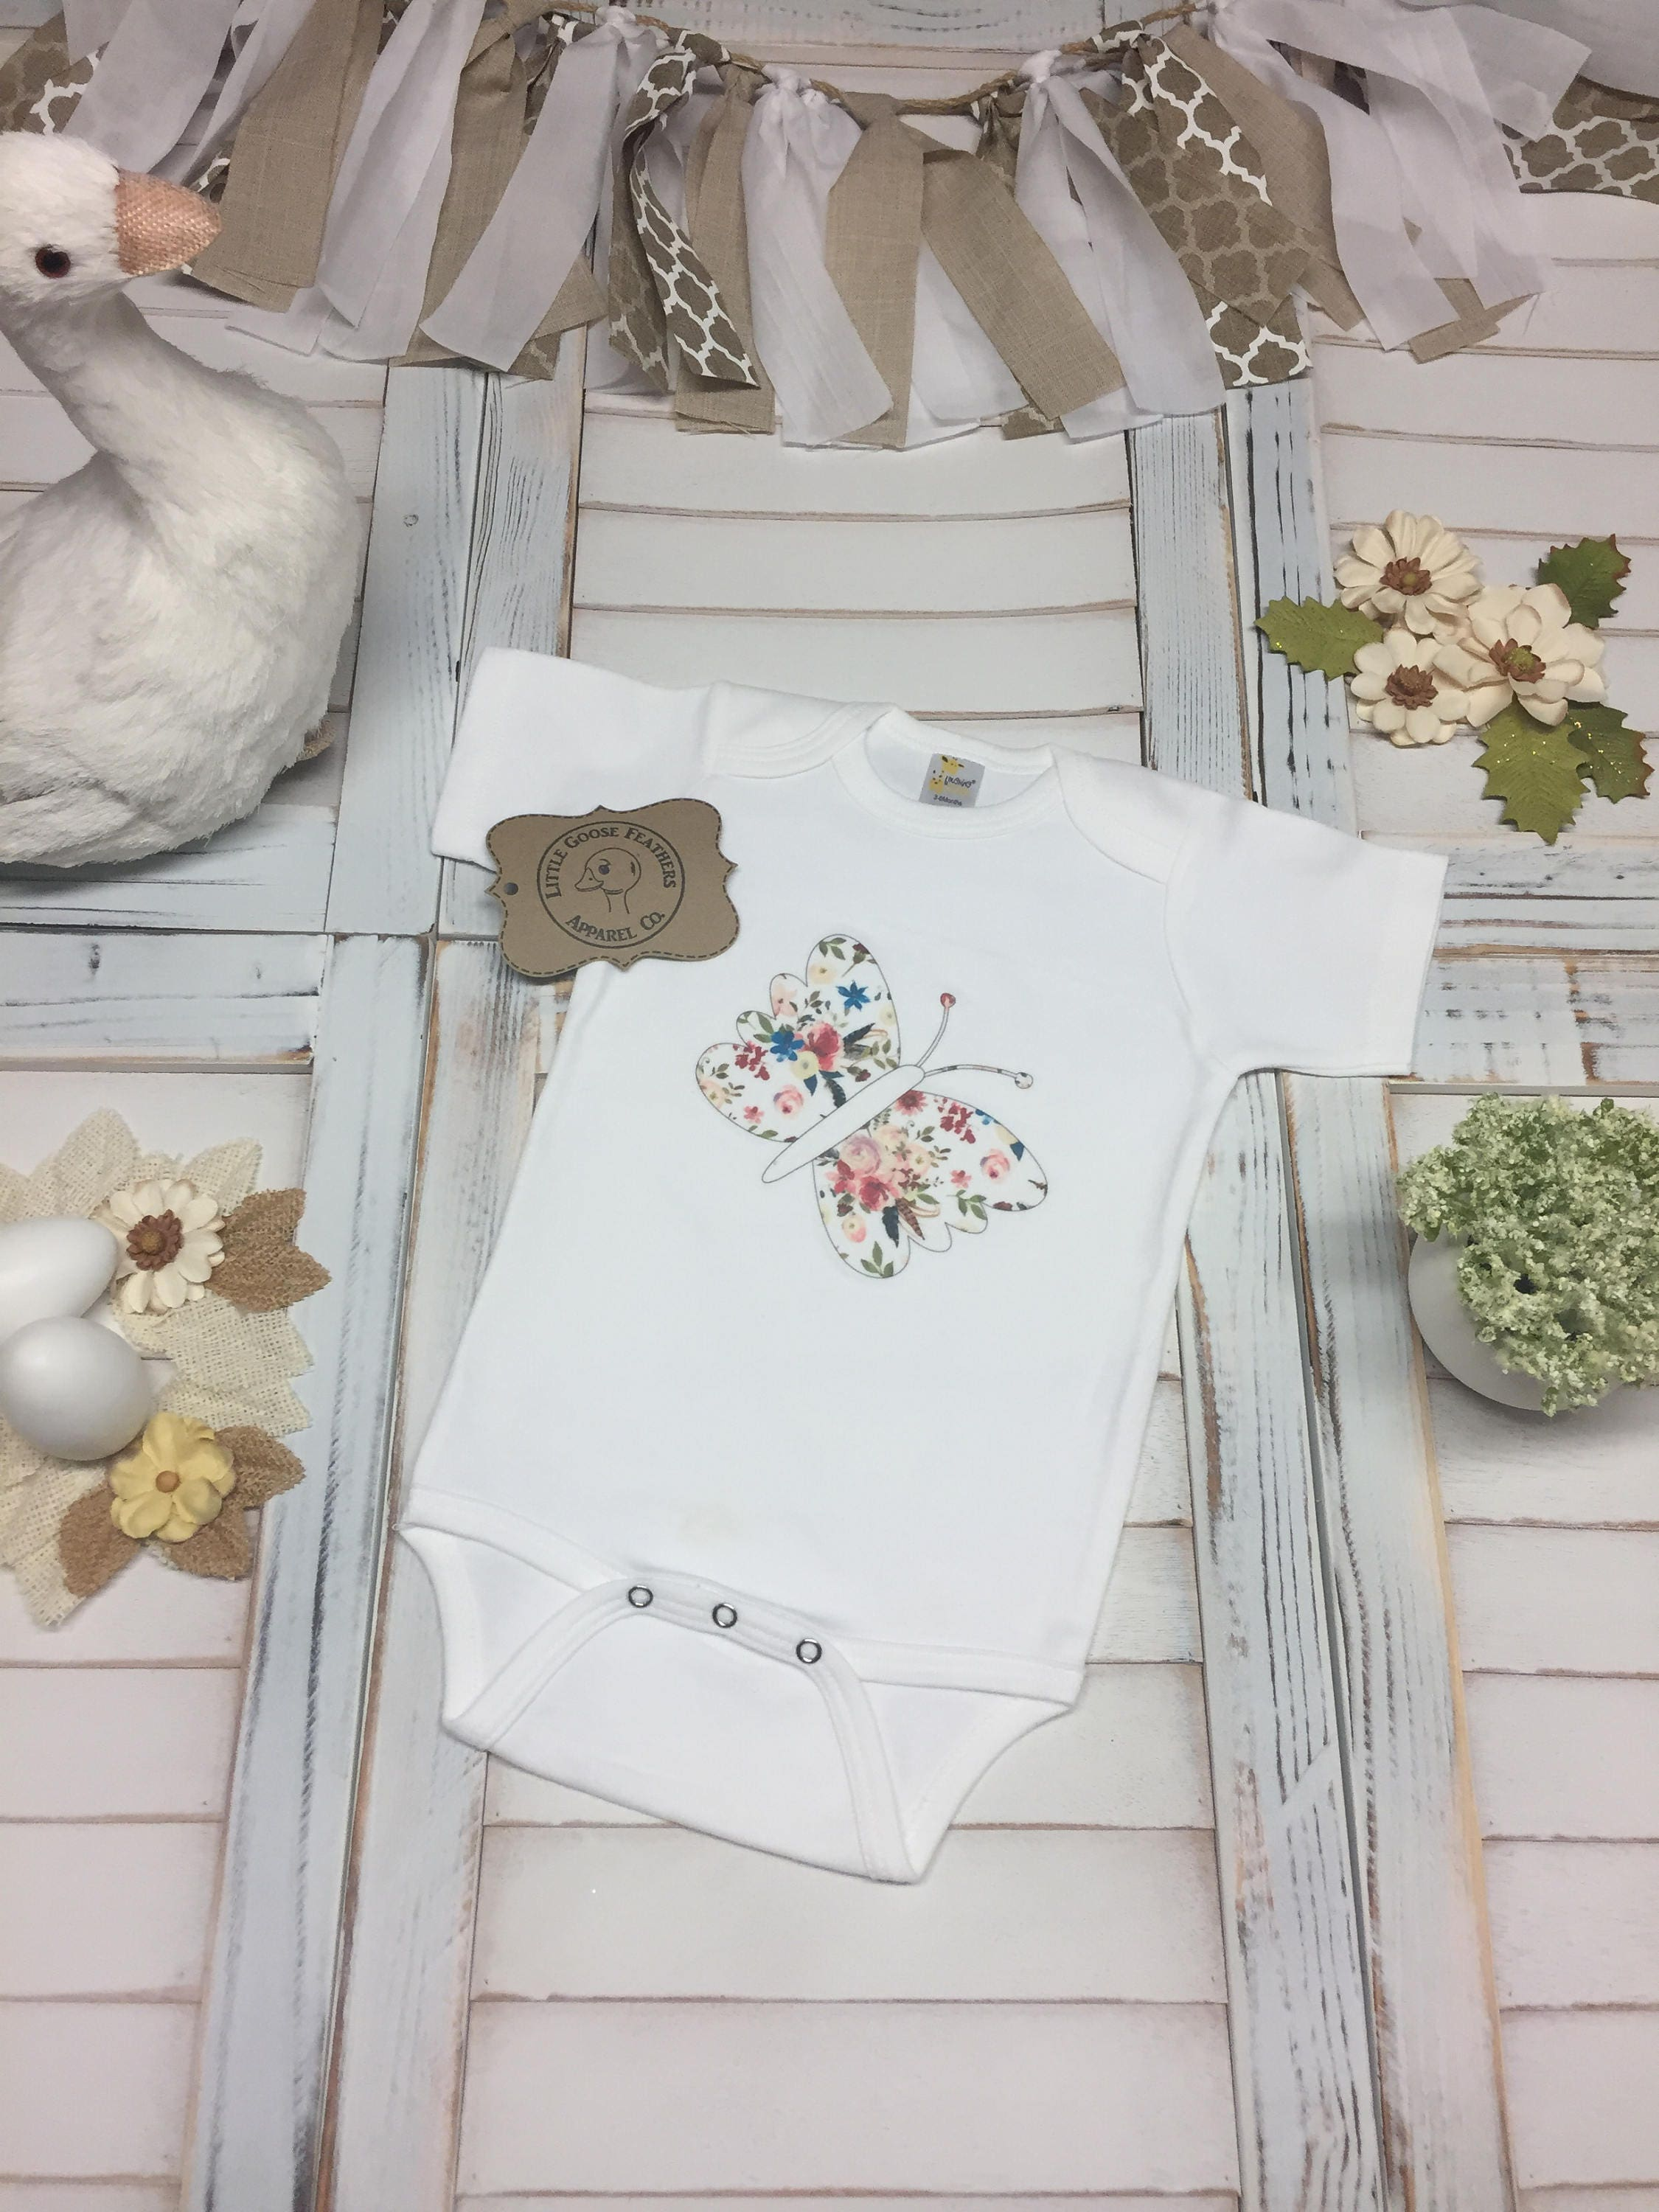 Cute butterfly with floral bouquet pattern wings design cute girls cute butterfly with floral bouquet pattern wings design cute girls bodysuitonesie toddler t shirt or girls boho style fringe dress izmirmasajfo